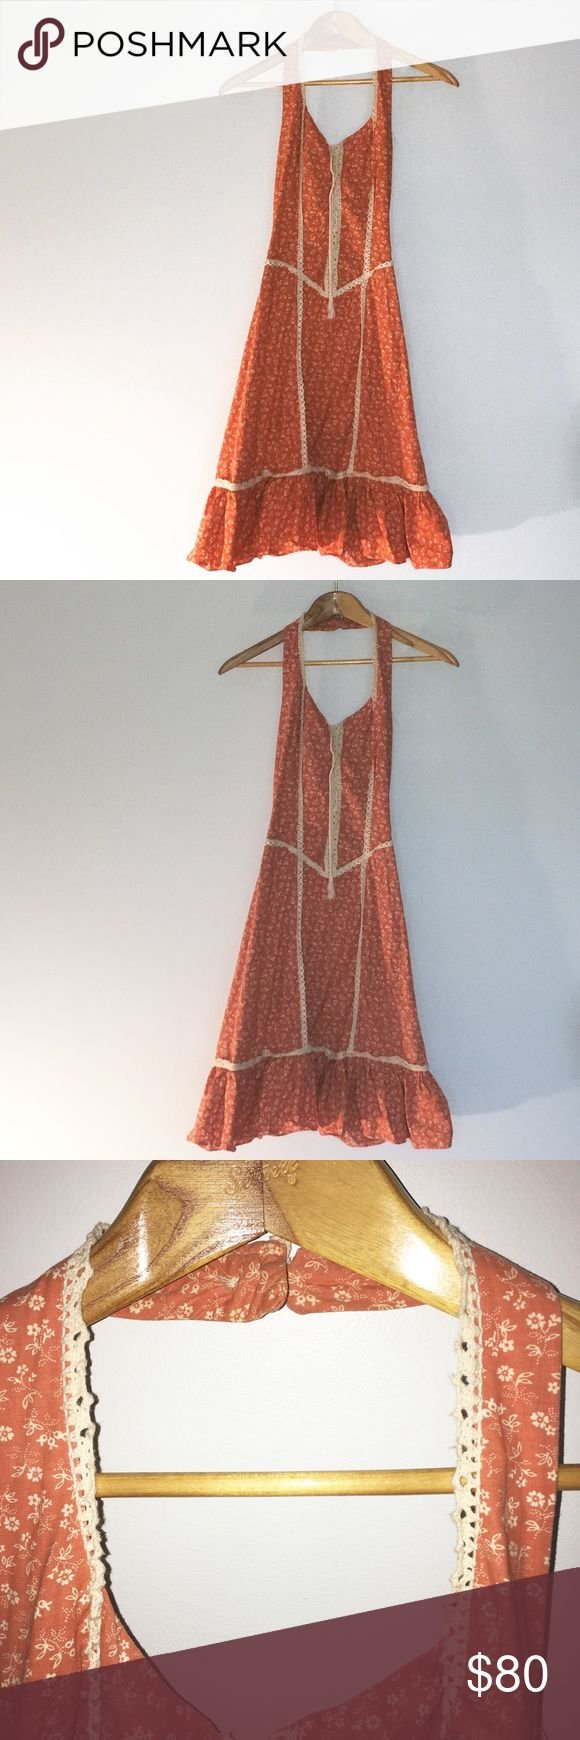 Vintage Rags by Kressandra San Francisco Dress 1970's Vintage Dress by Rags Krassandra San Francisco. This dress is so cute and in perfect condition. Perfect for festival season and all summer long! Although this dress reads size 9 vintage sizing run smells.                                                               Chest 30 inches                                                                                 Waist 26 inches…